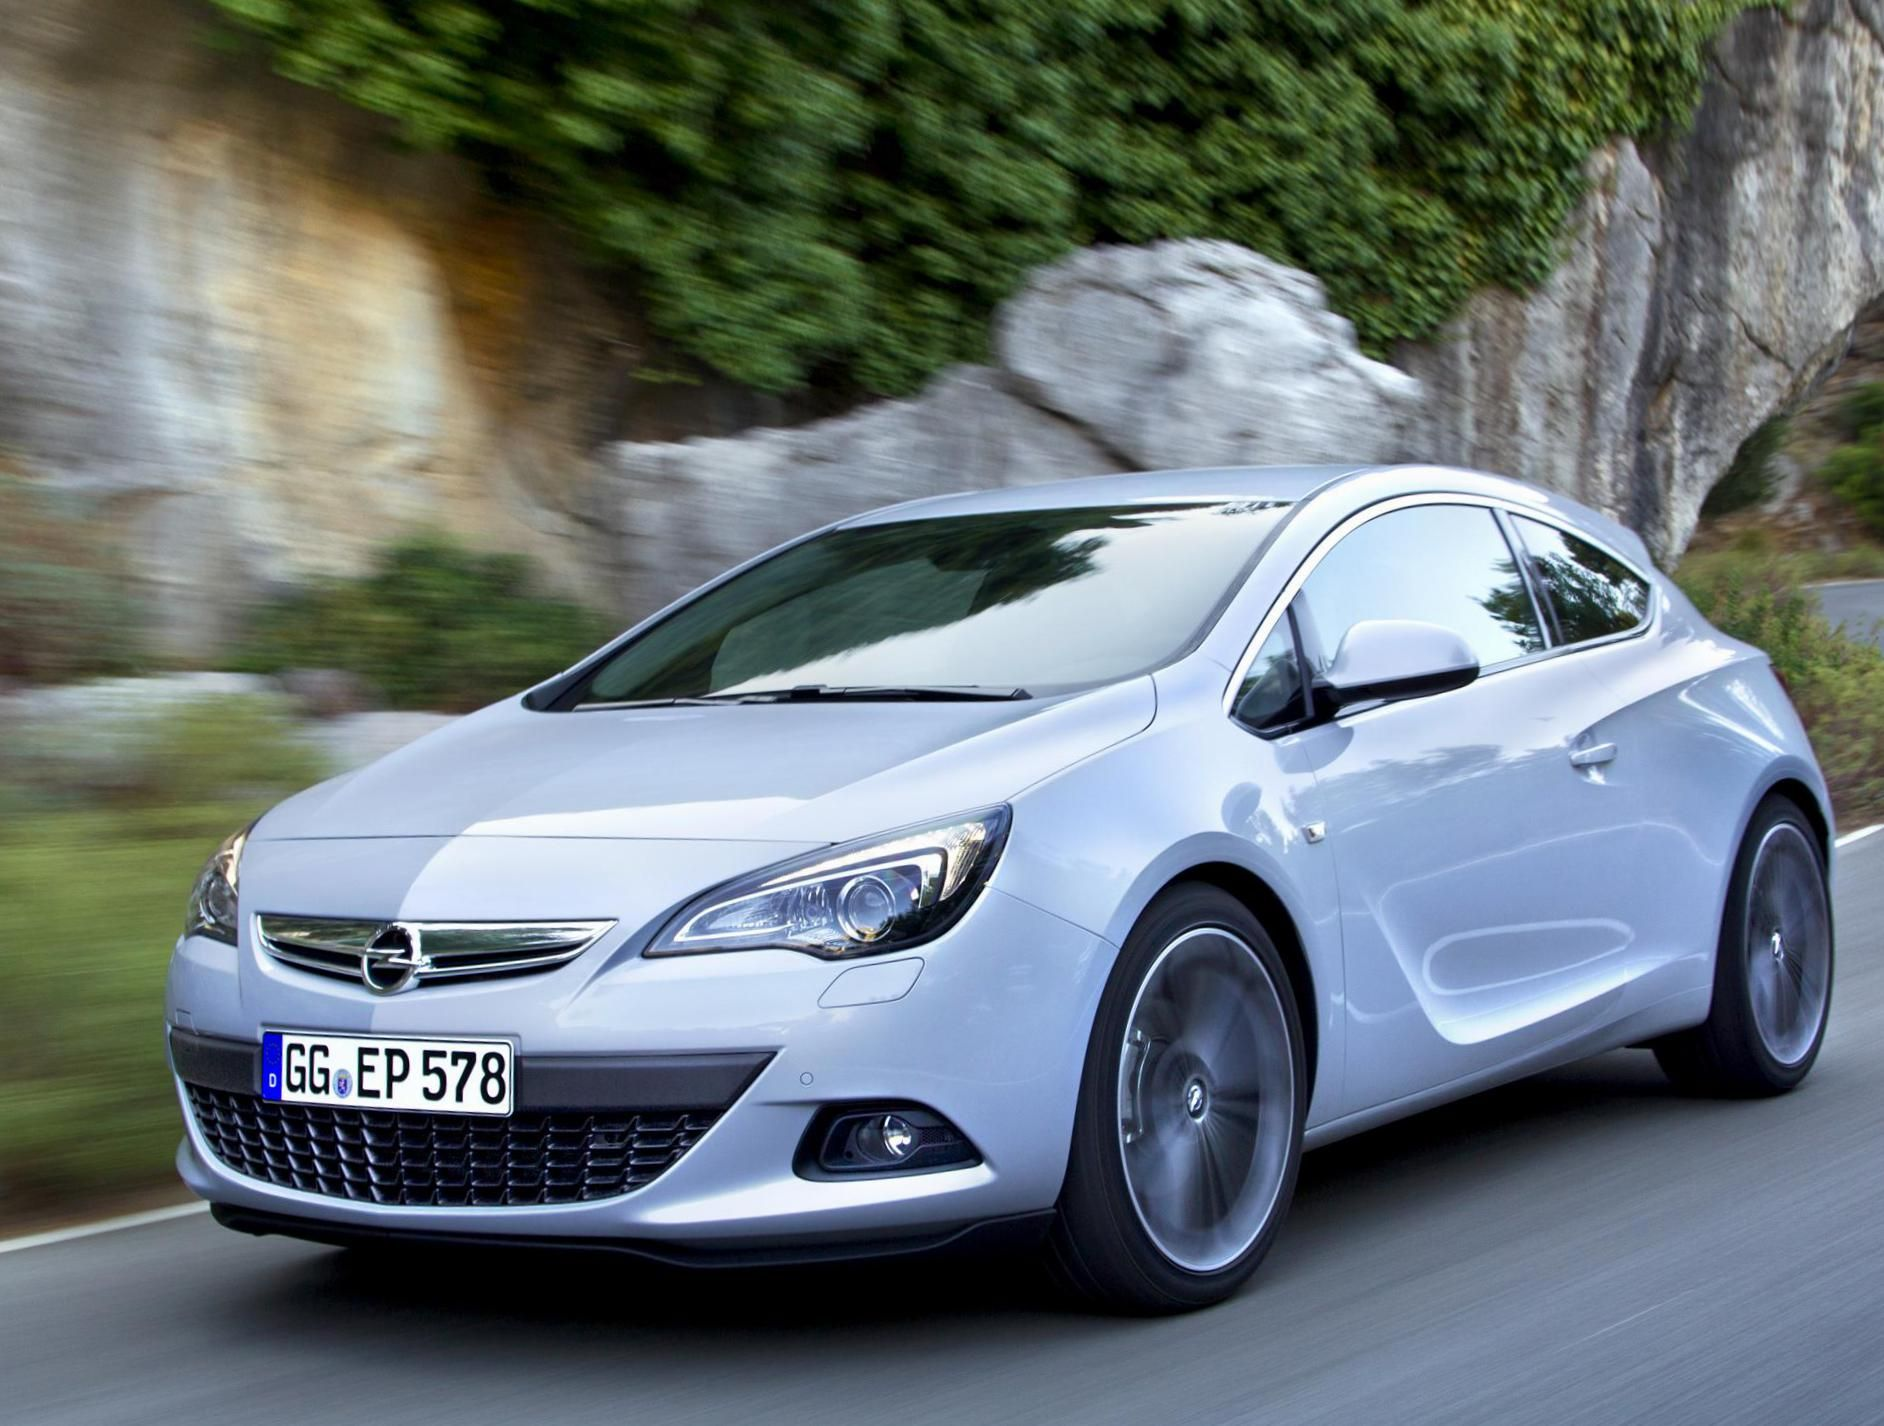 Opel Astra J Gtc Photos And Specs Photo Astra J Gtc Opel Specification And 24 Perfect Photos Of Opel Astra J Gtc Opel Volkswagen Car Model